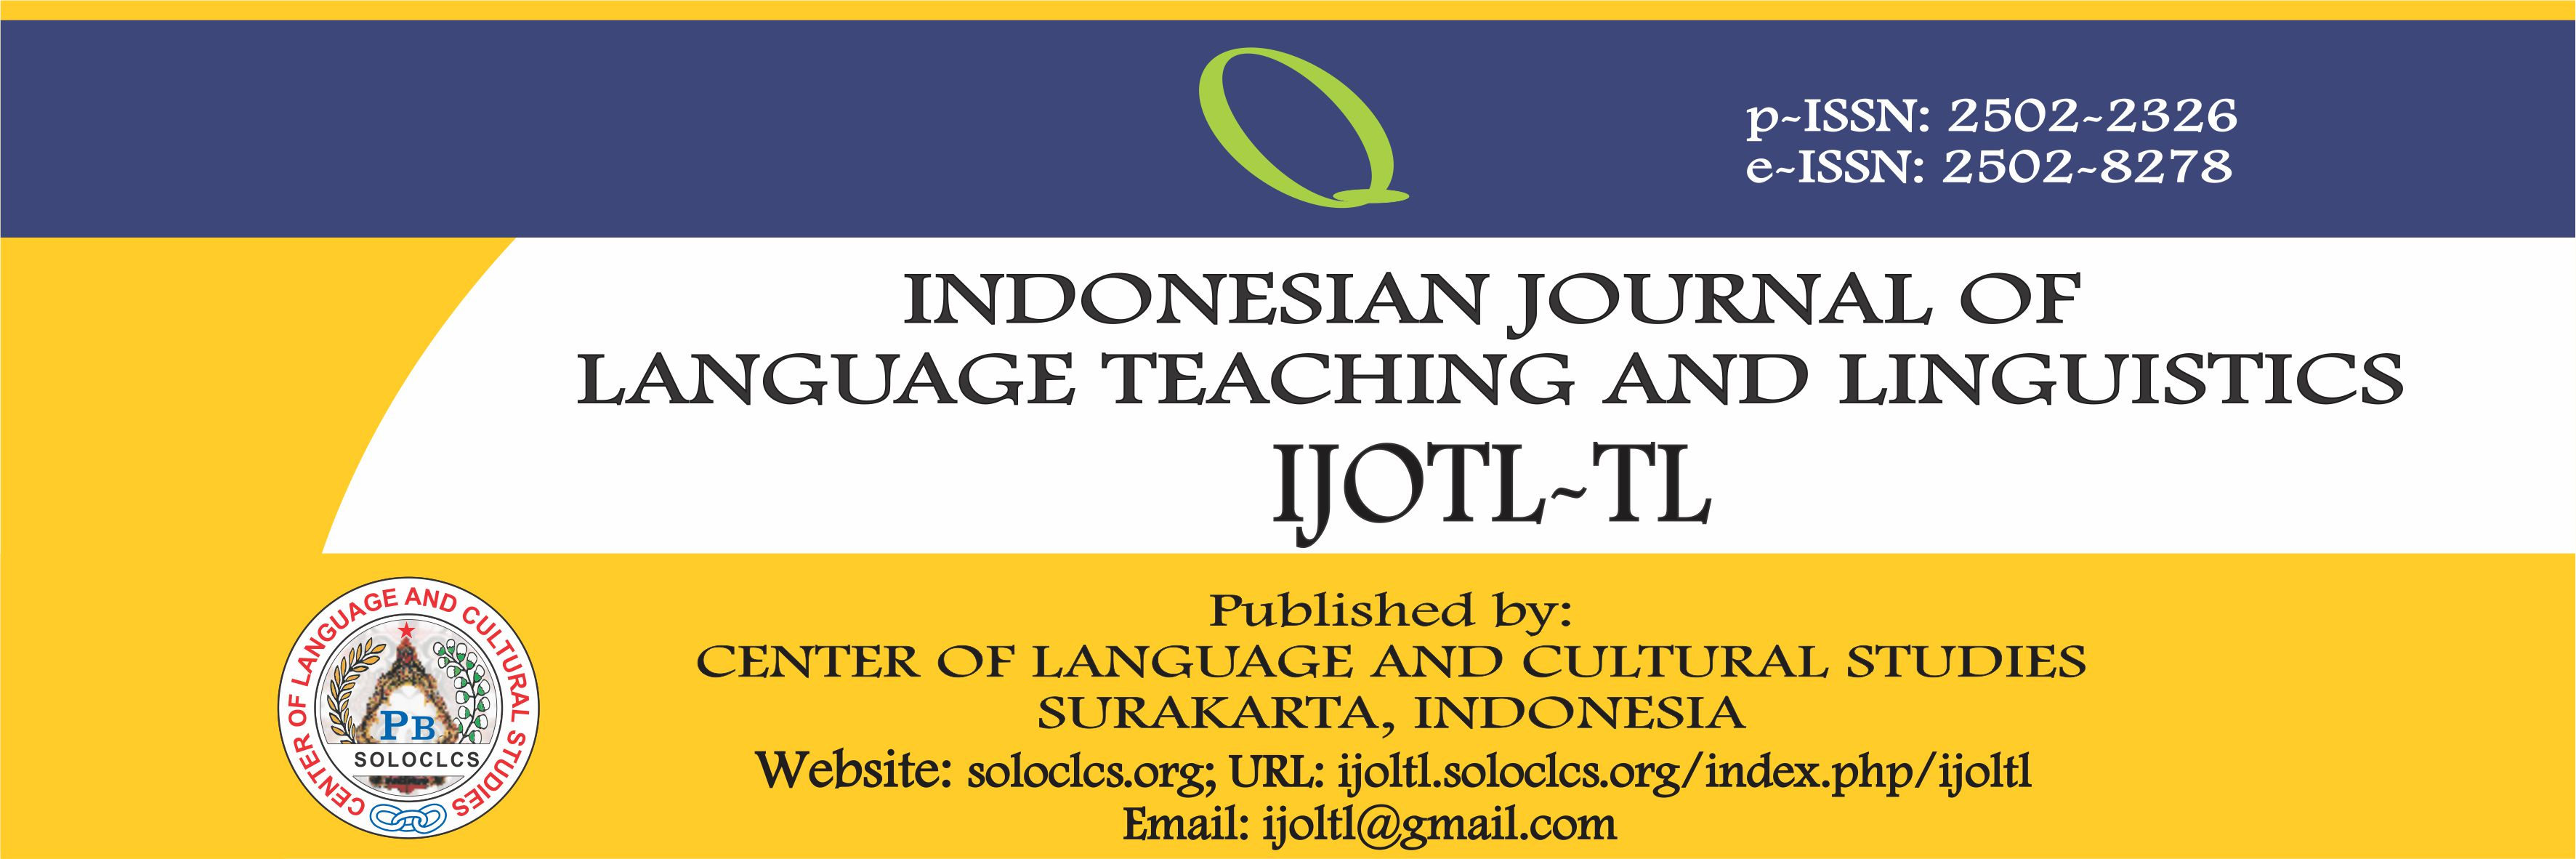 IJOLTL-TL (Indonesian Journal of Language Teaching and Linguistics)